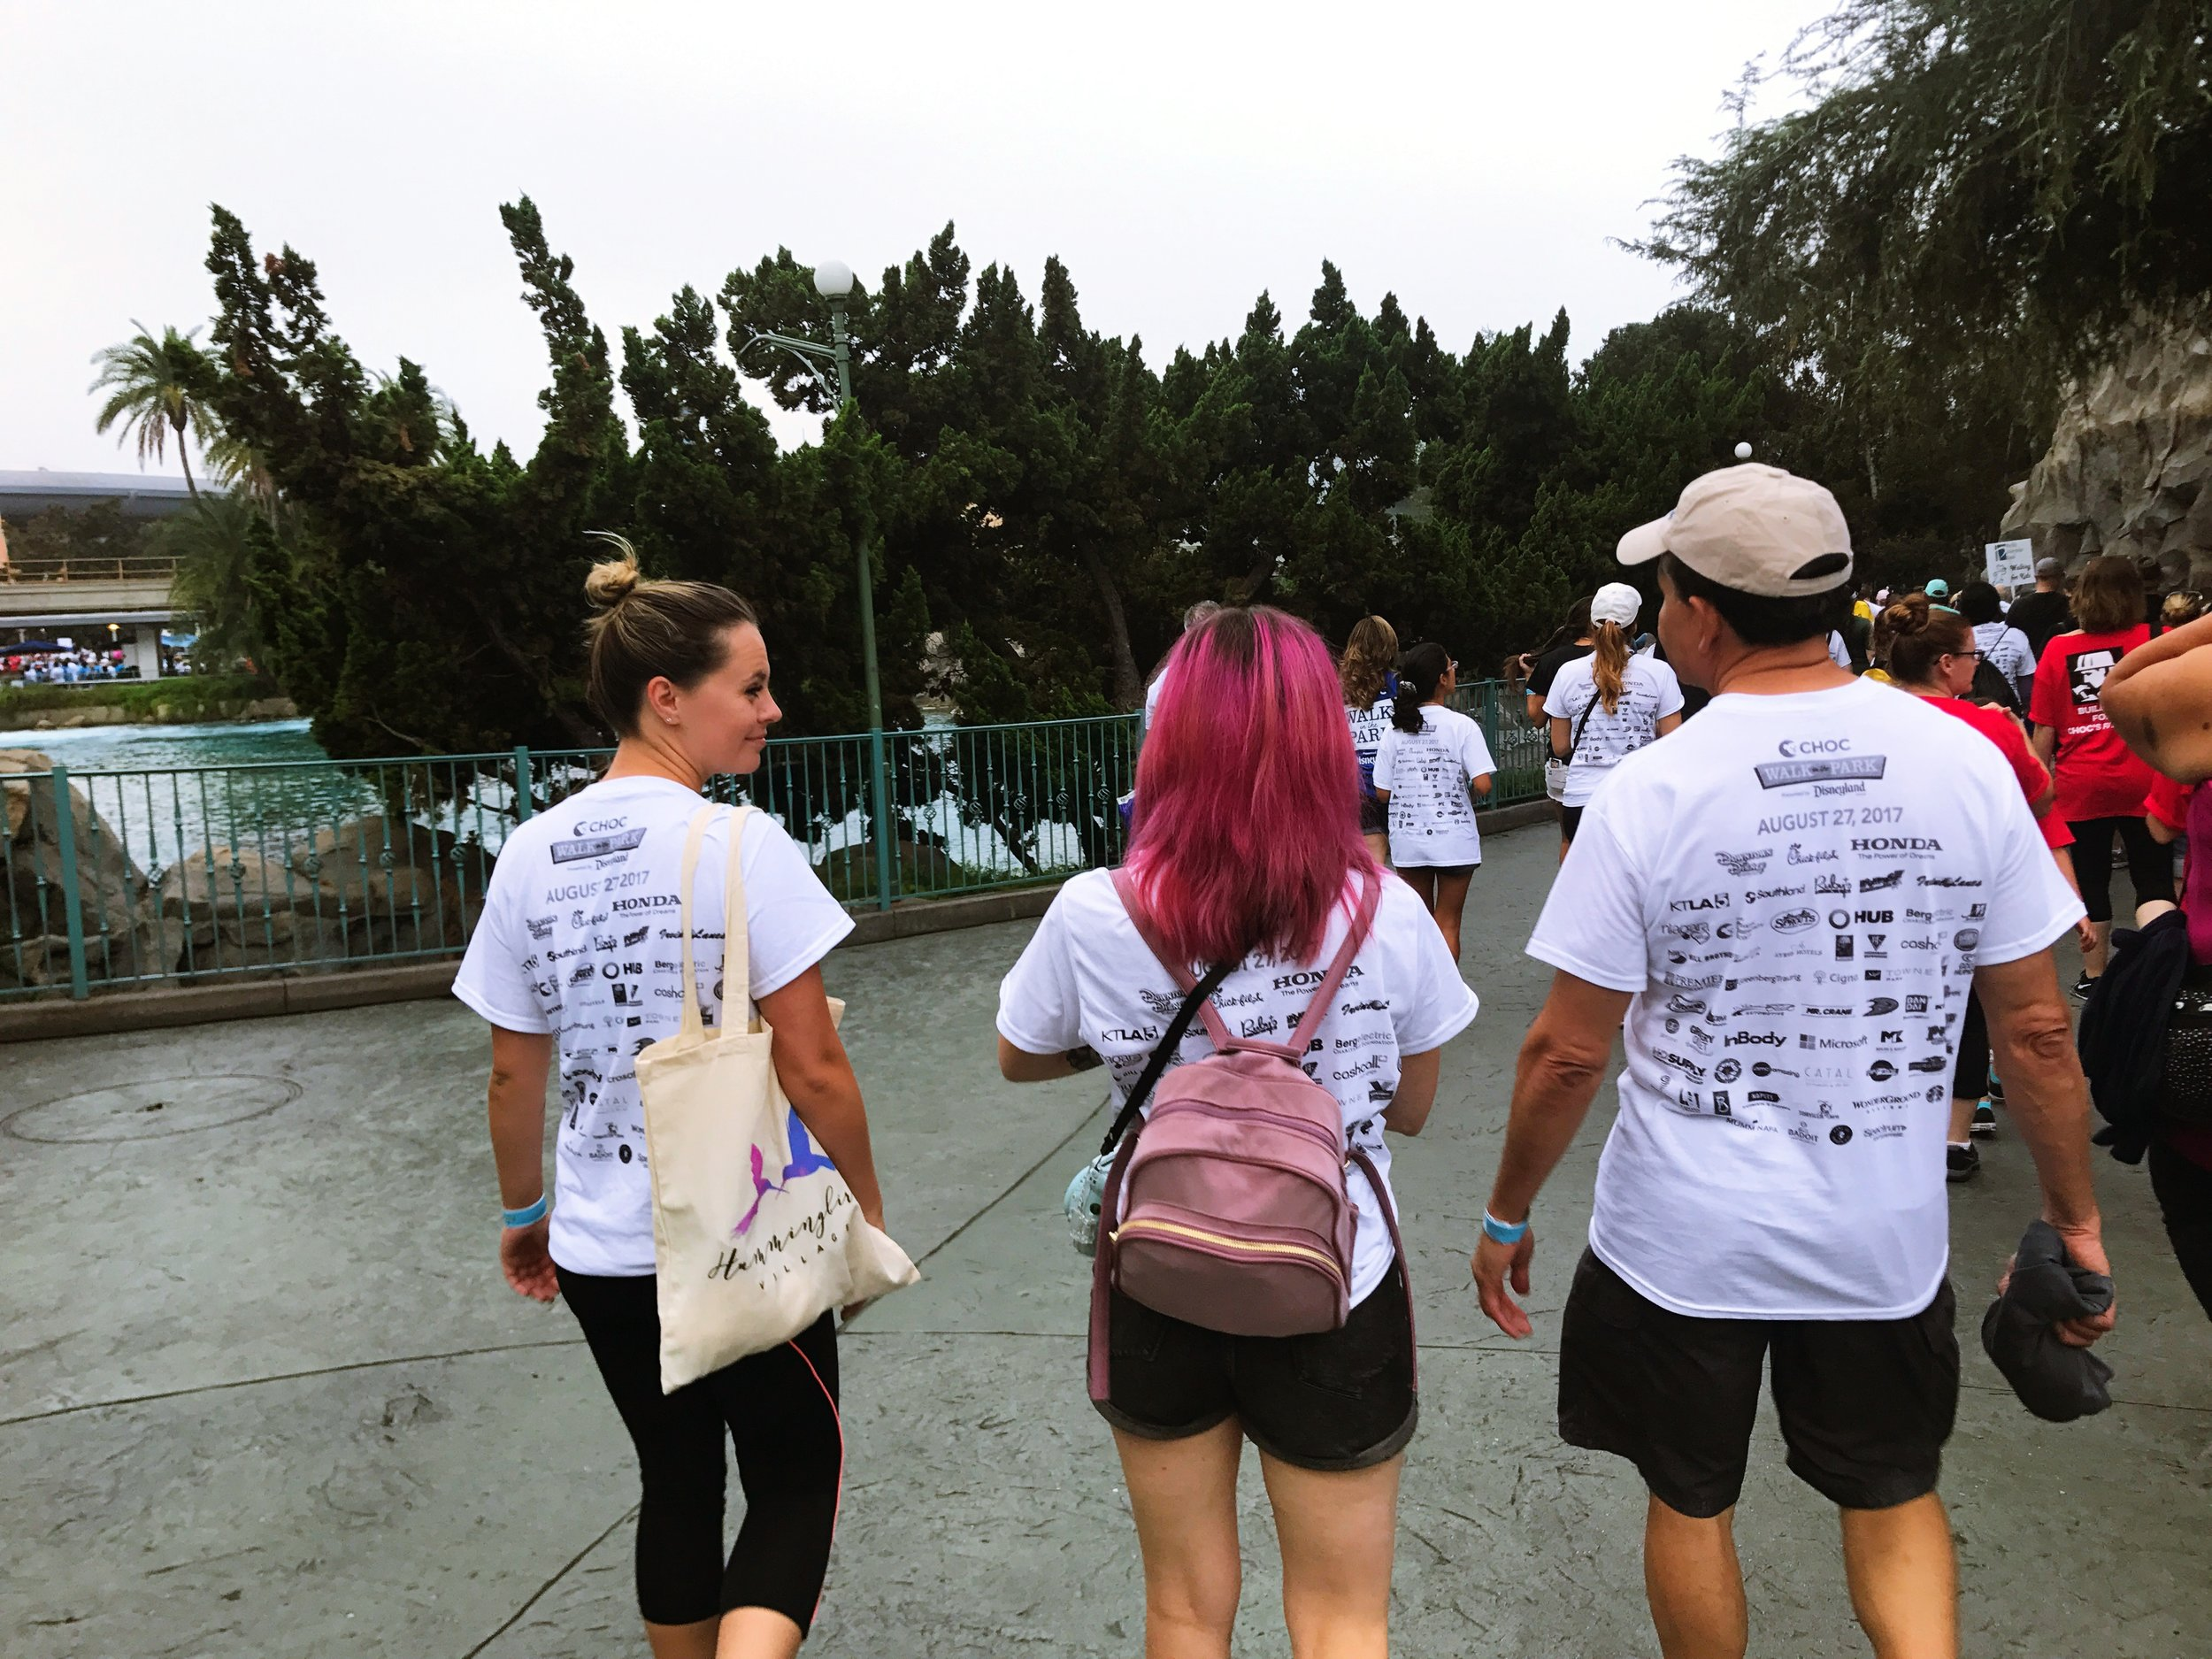 We joined our team and set out to walk through Disneyland!